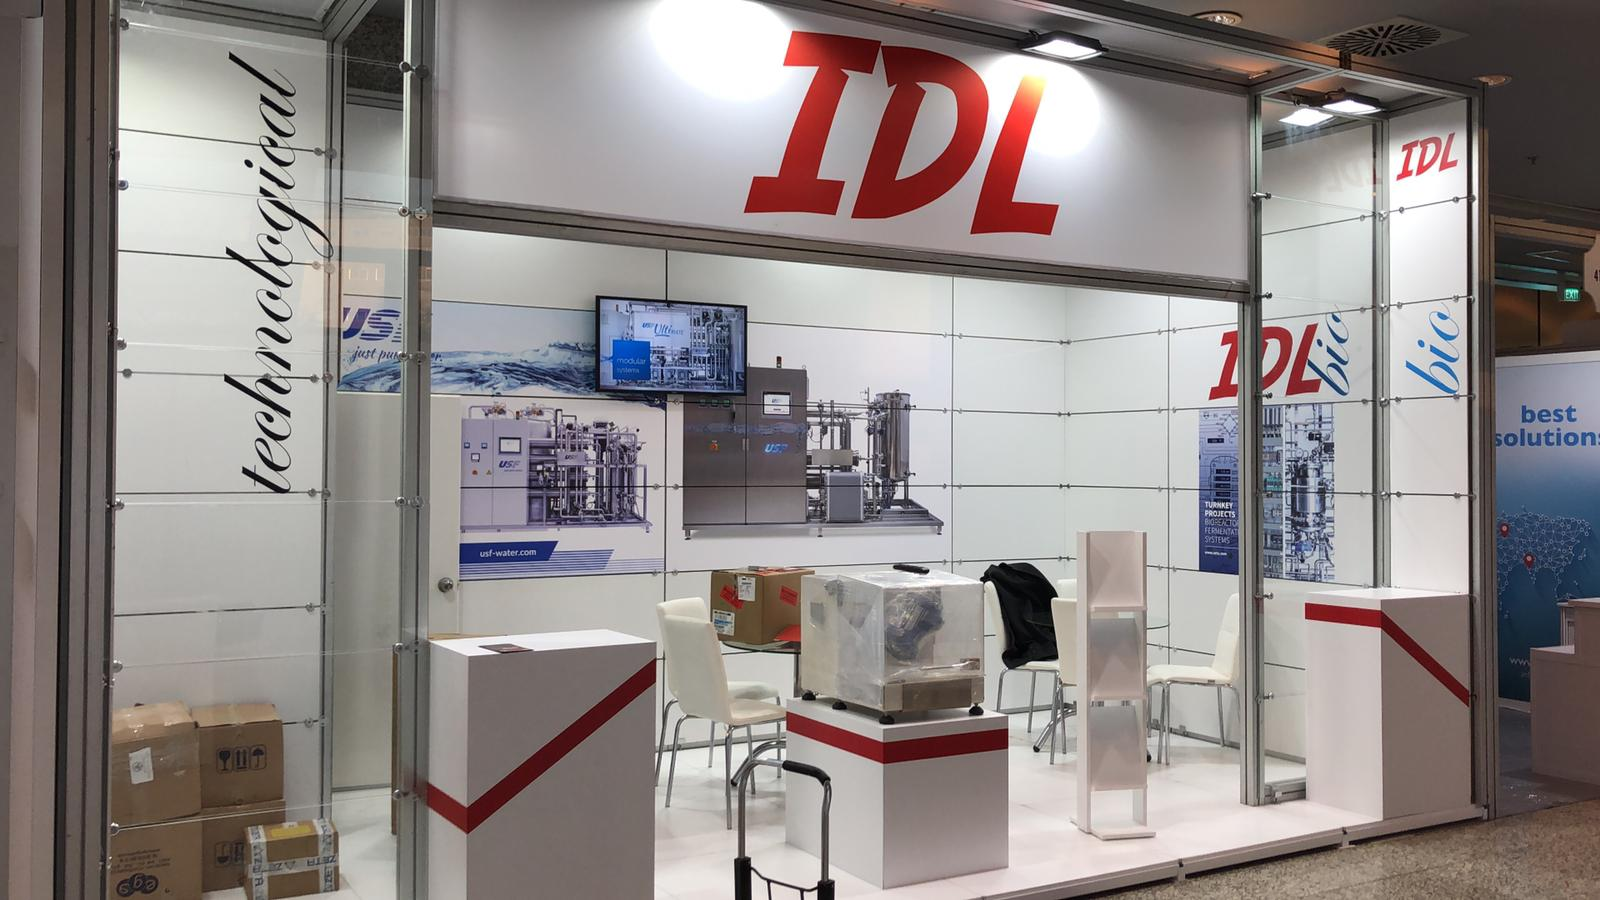 <a href='application-detail/163'>CLICK HERE - Biotecnica Istanbul 2019 IDL Stand   SHOW MORE<a/>